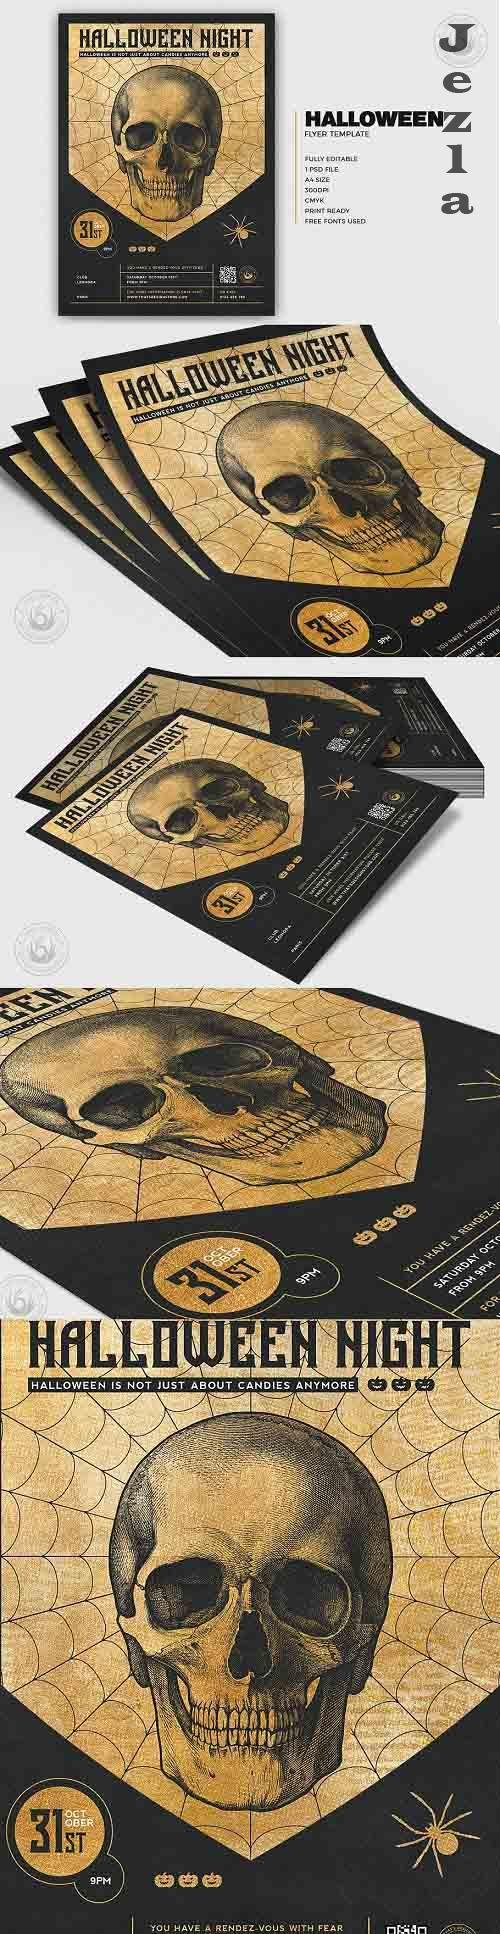 Halloween Flyer Template V26 - 5171586